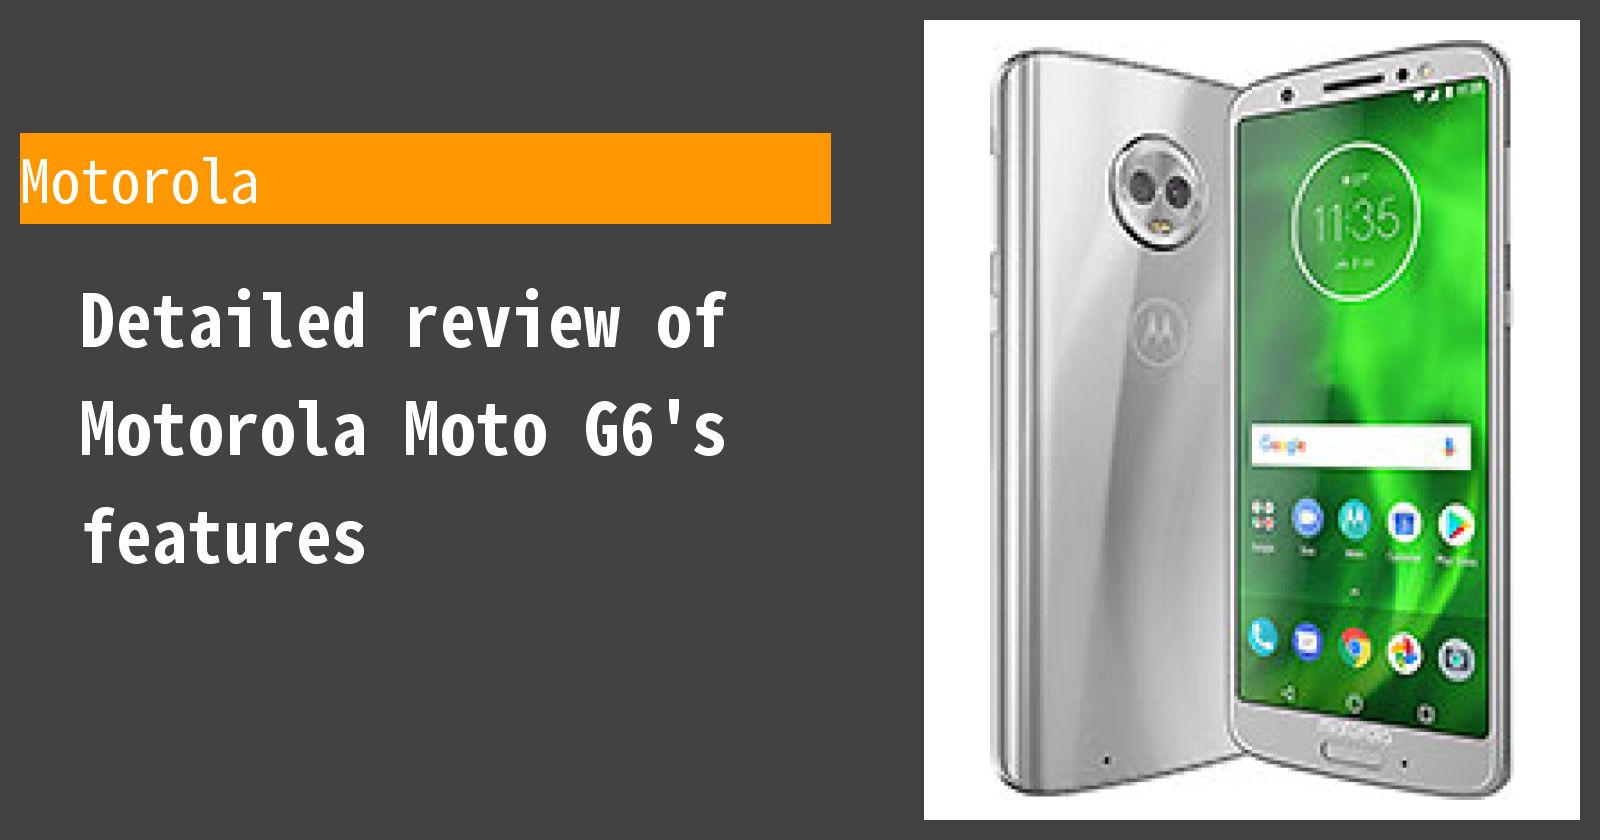 Detailed review of Motorola Moto G6's features